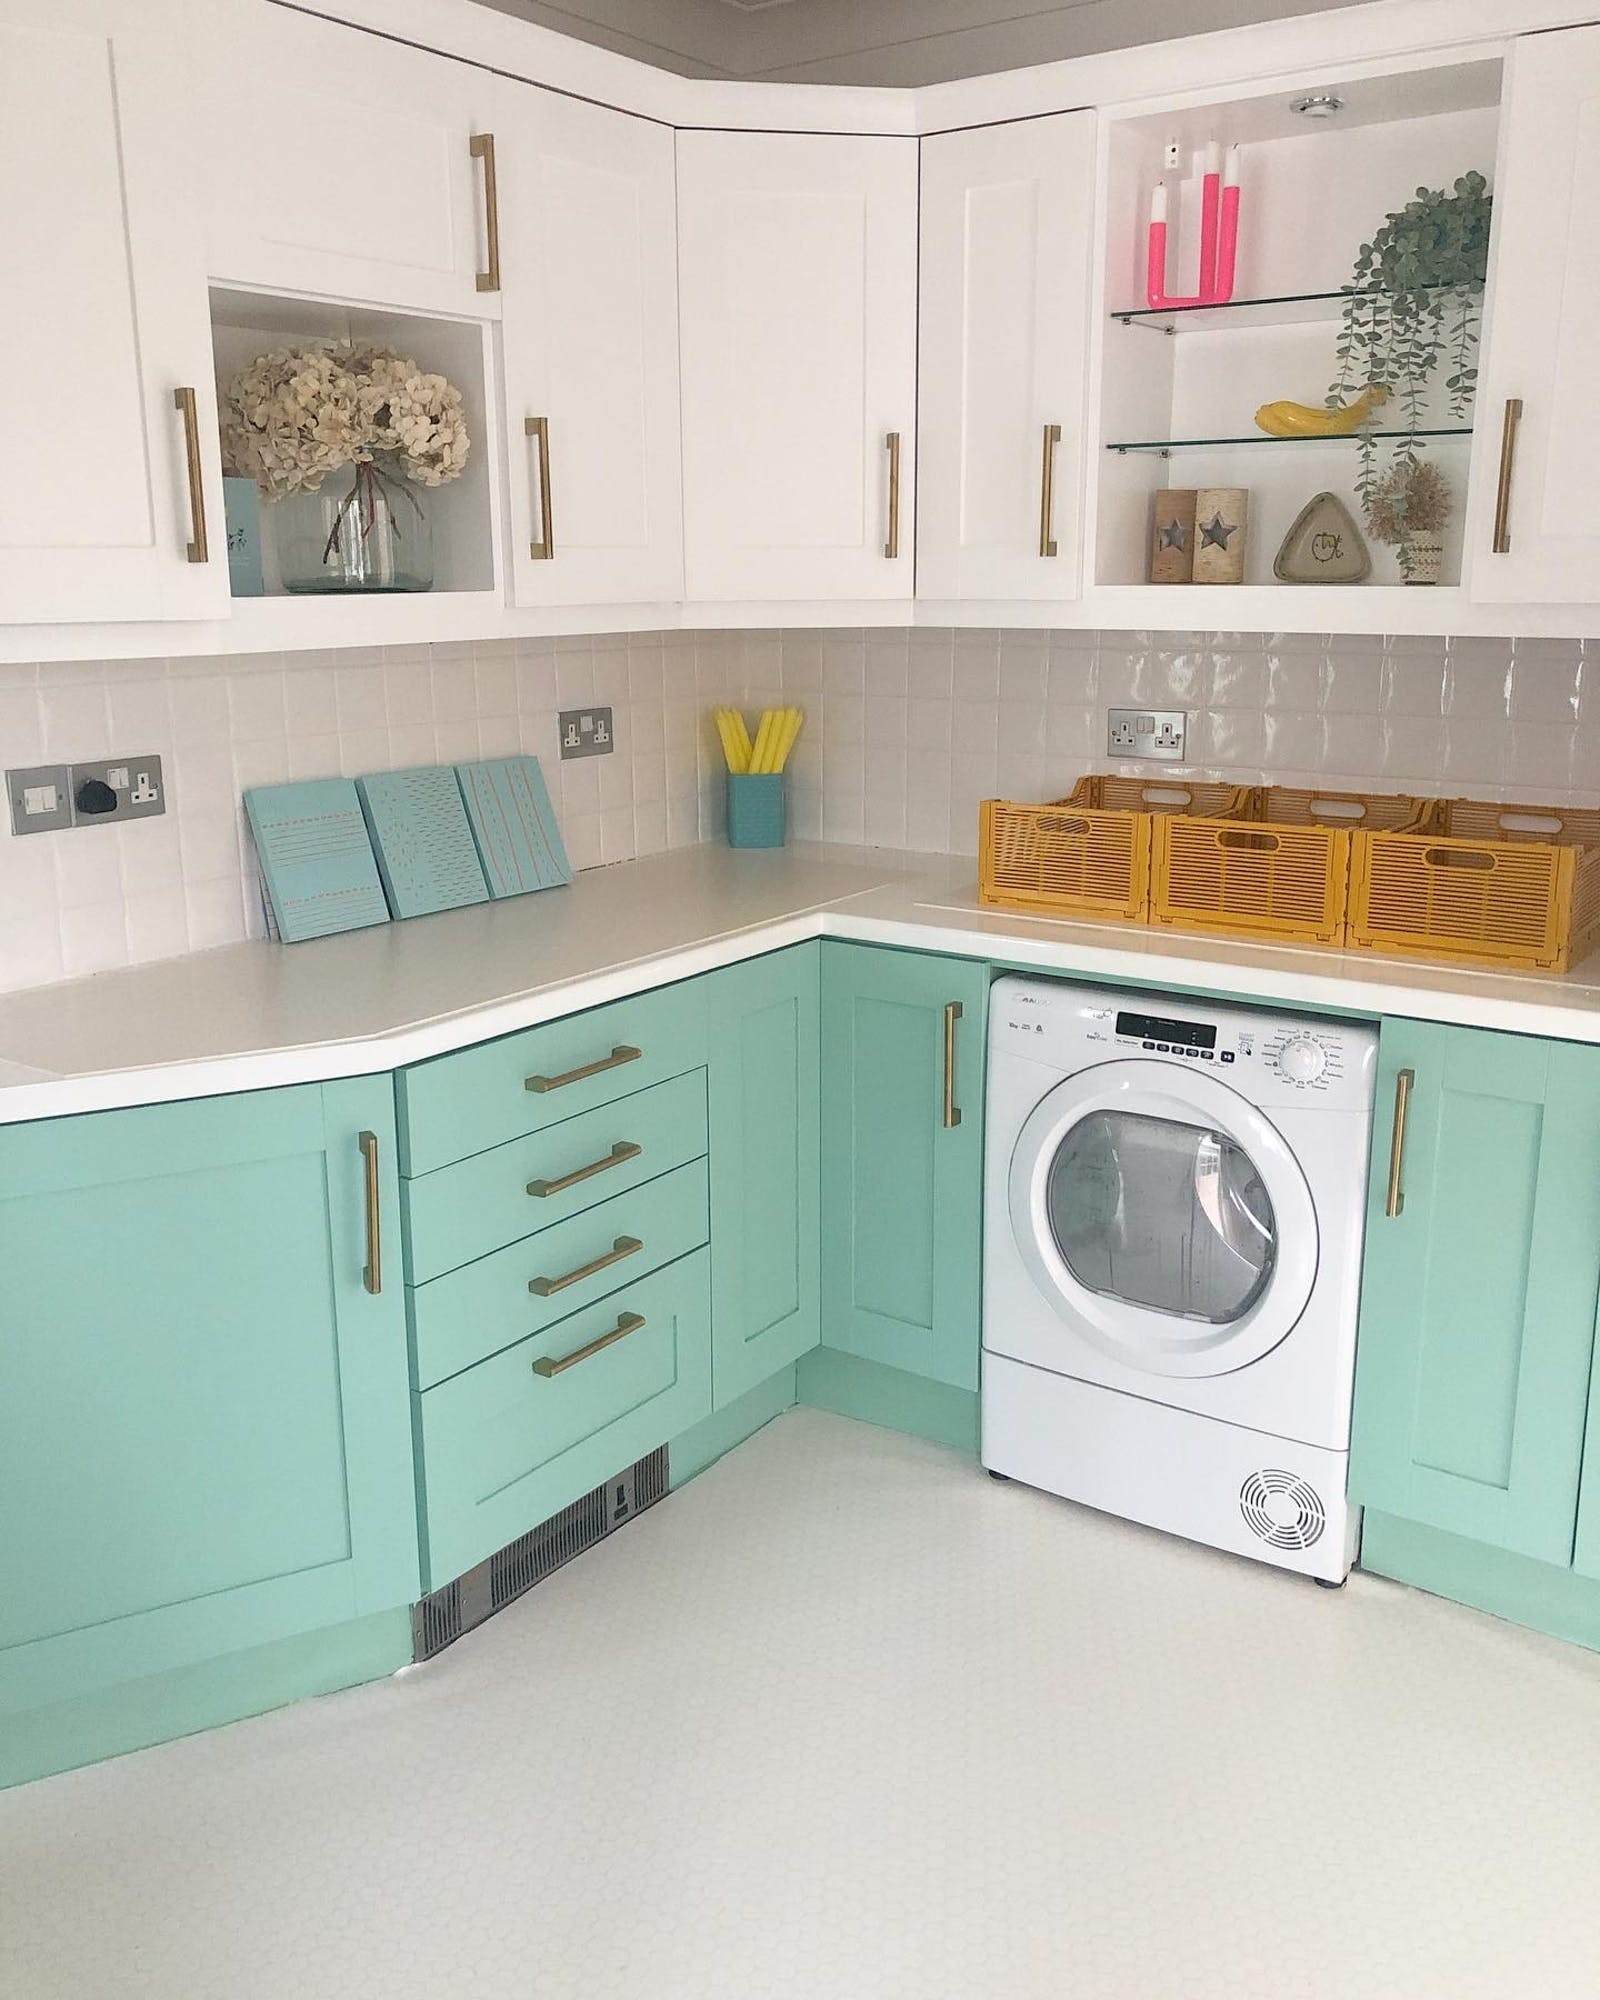 Kitchen cabinets painted in bright Green 08